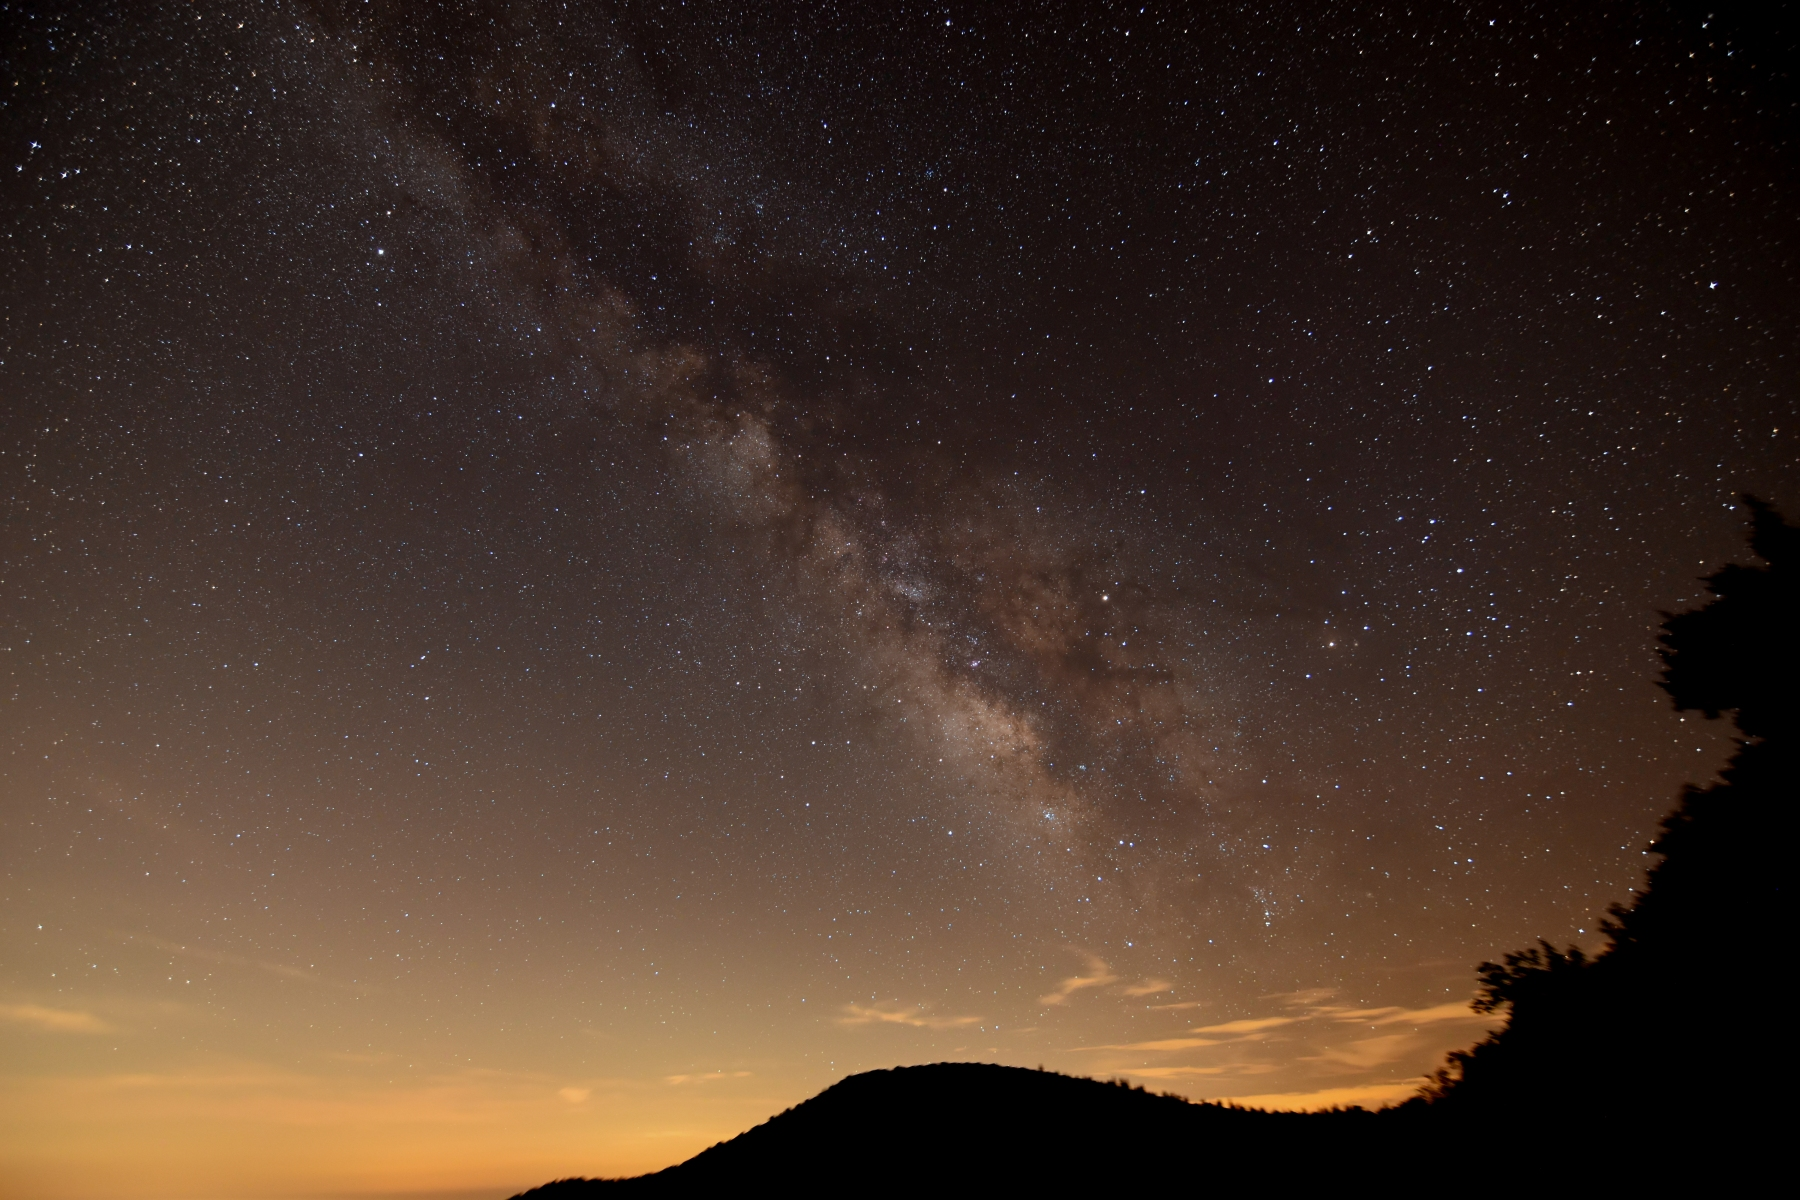 Milky Way over Blue Ridge Parkway